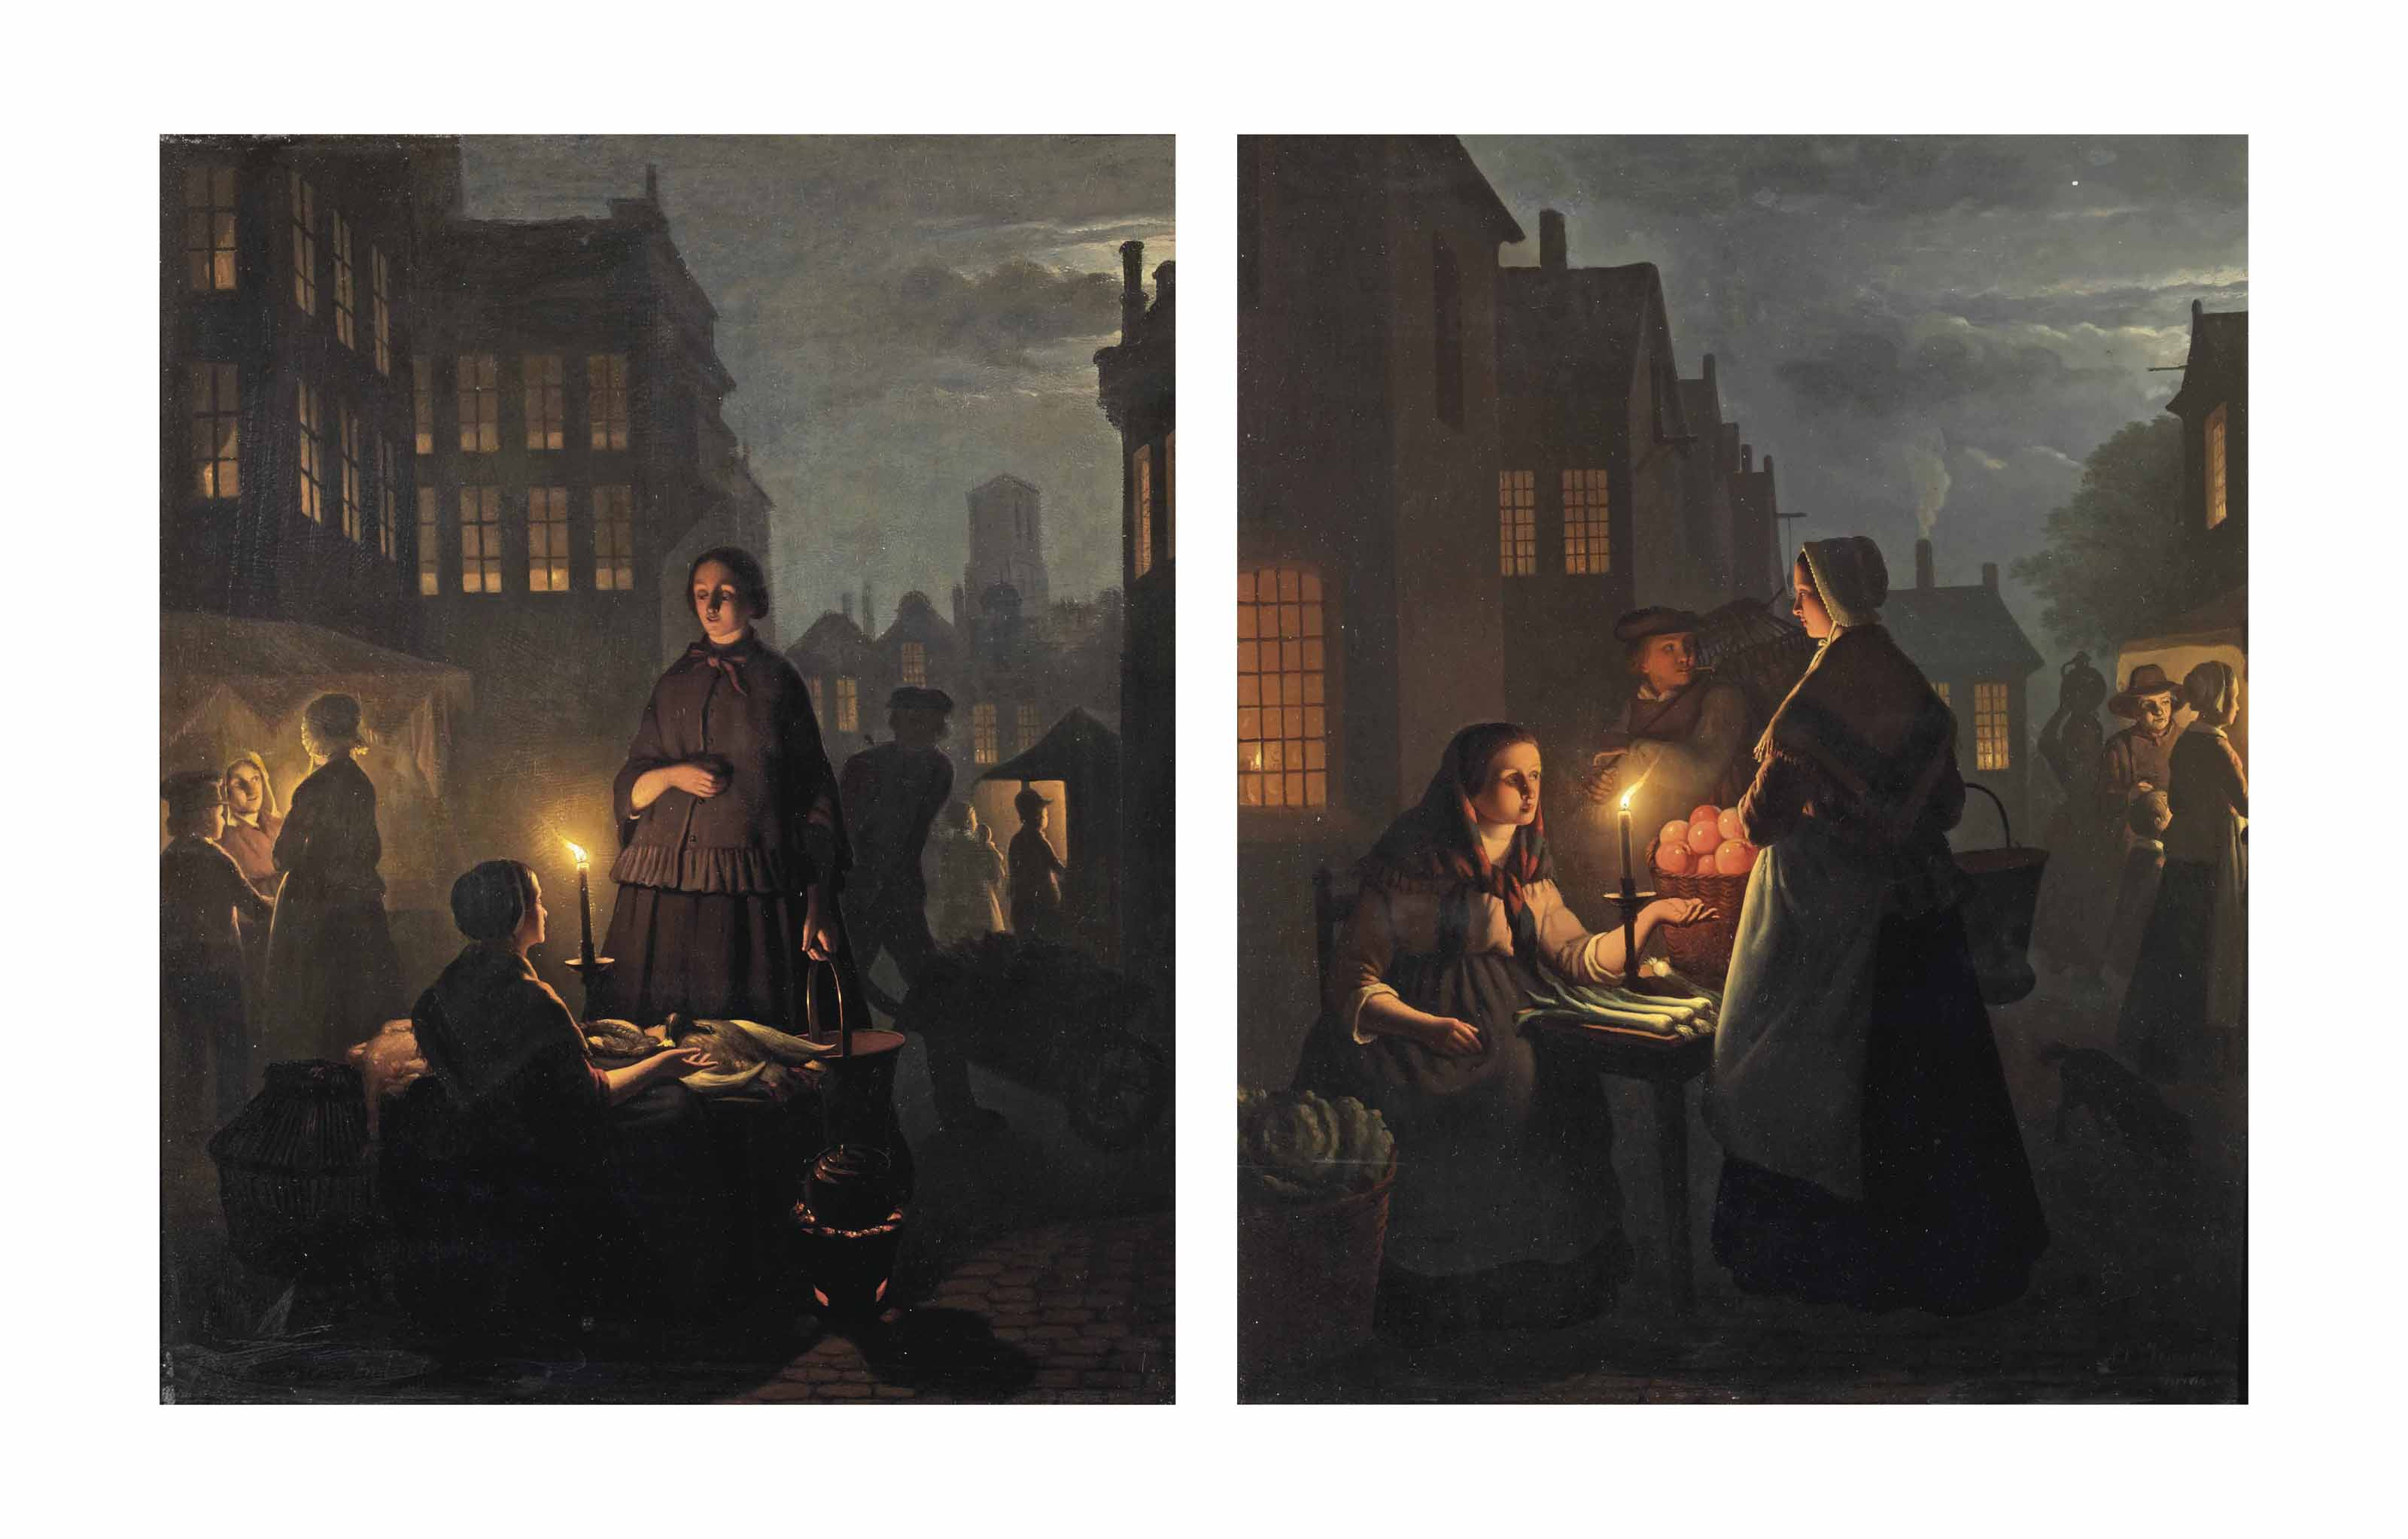 A nocturnal market scene with a poultry seller; and A nocturnal market scene with a vegetable seller